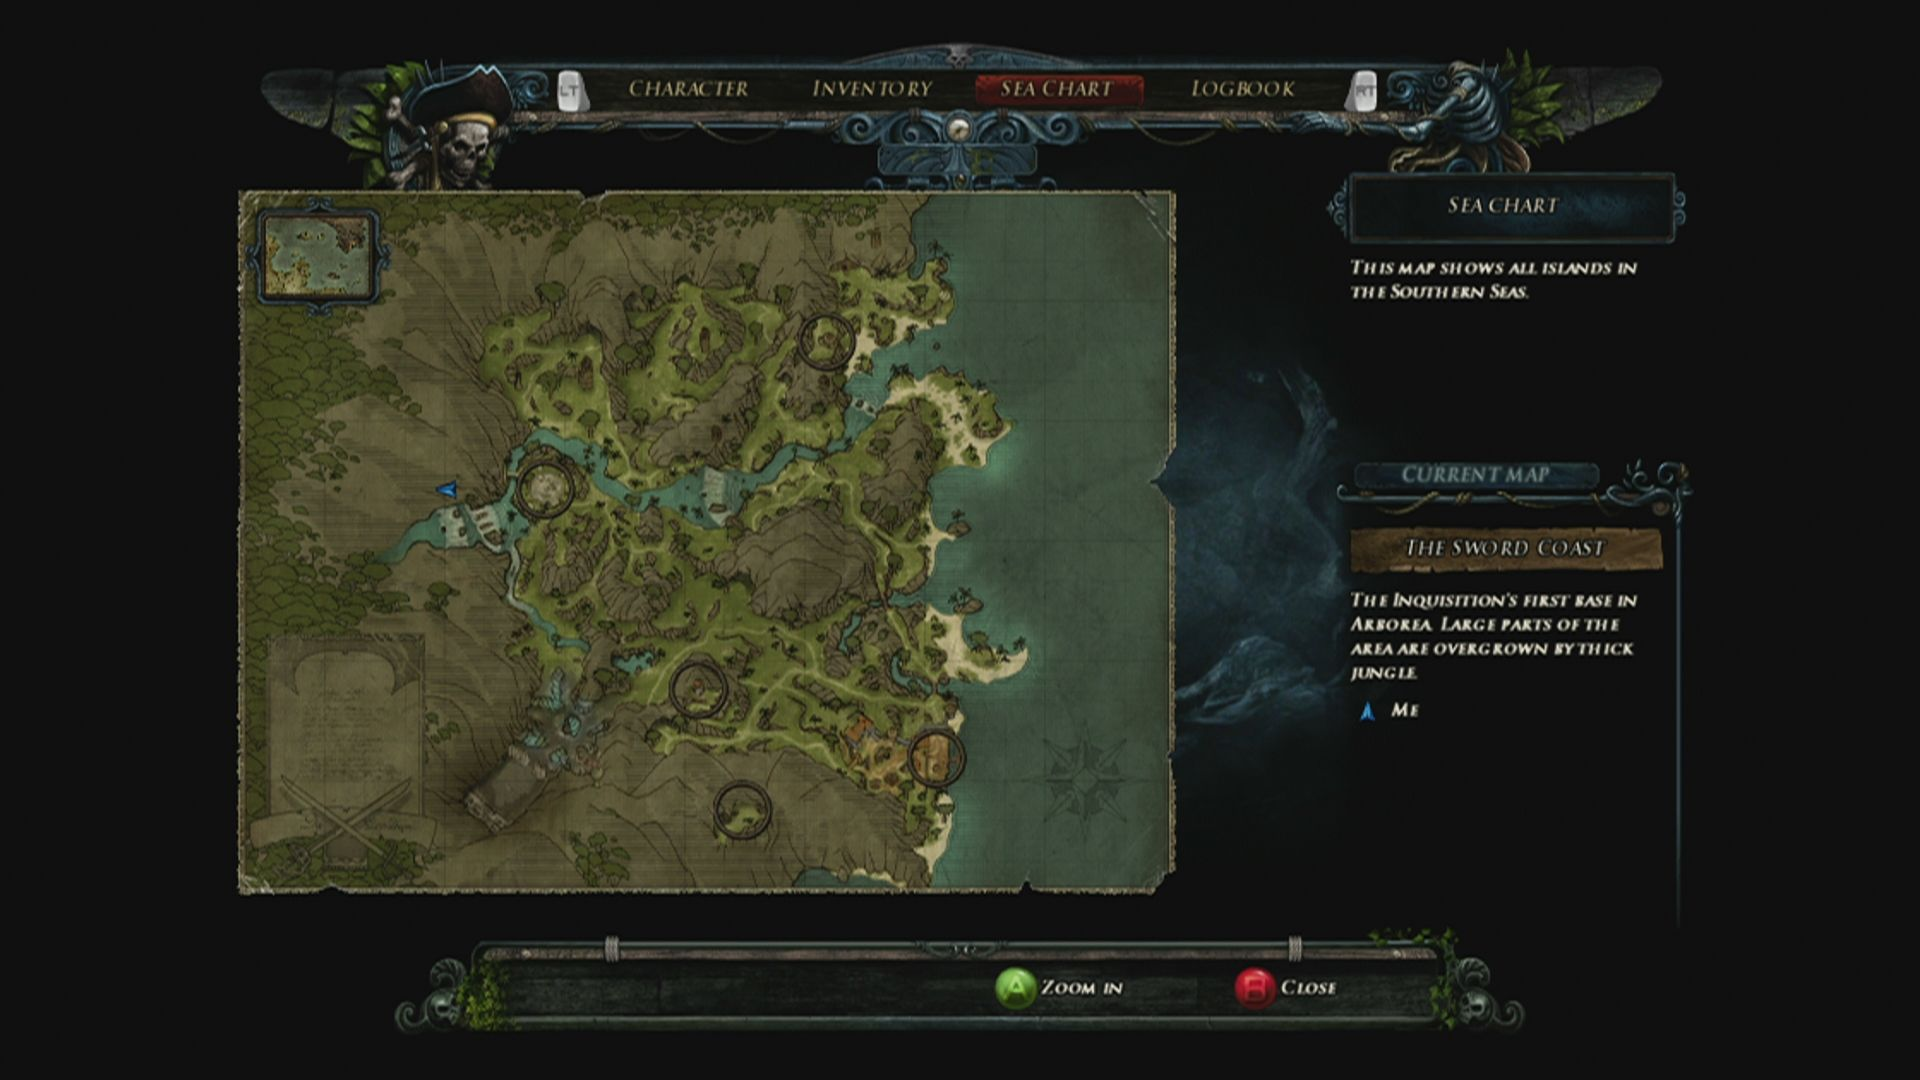 Risen 2: Dark Waters Xbox 360 Map of the current area including fast travel spots